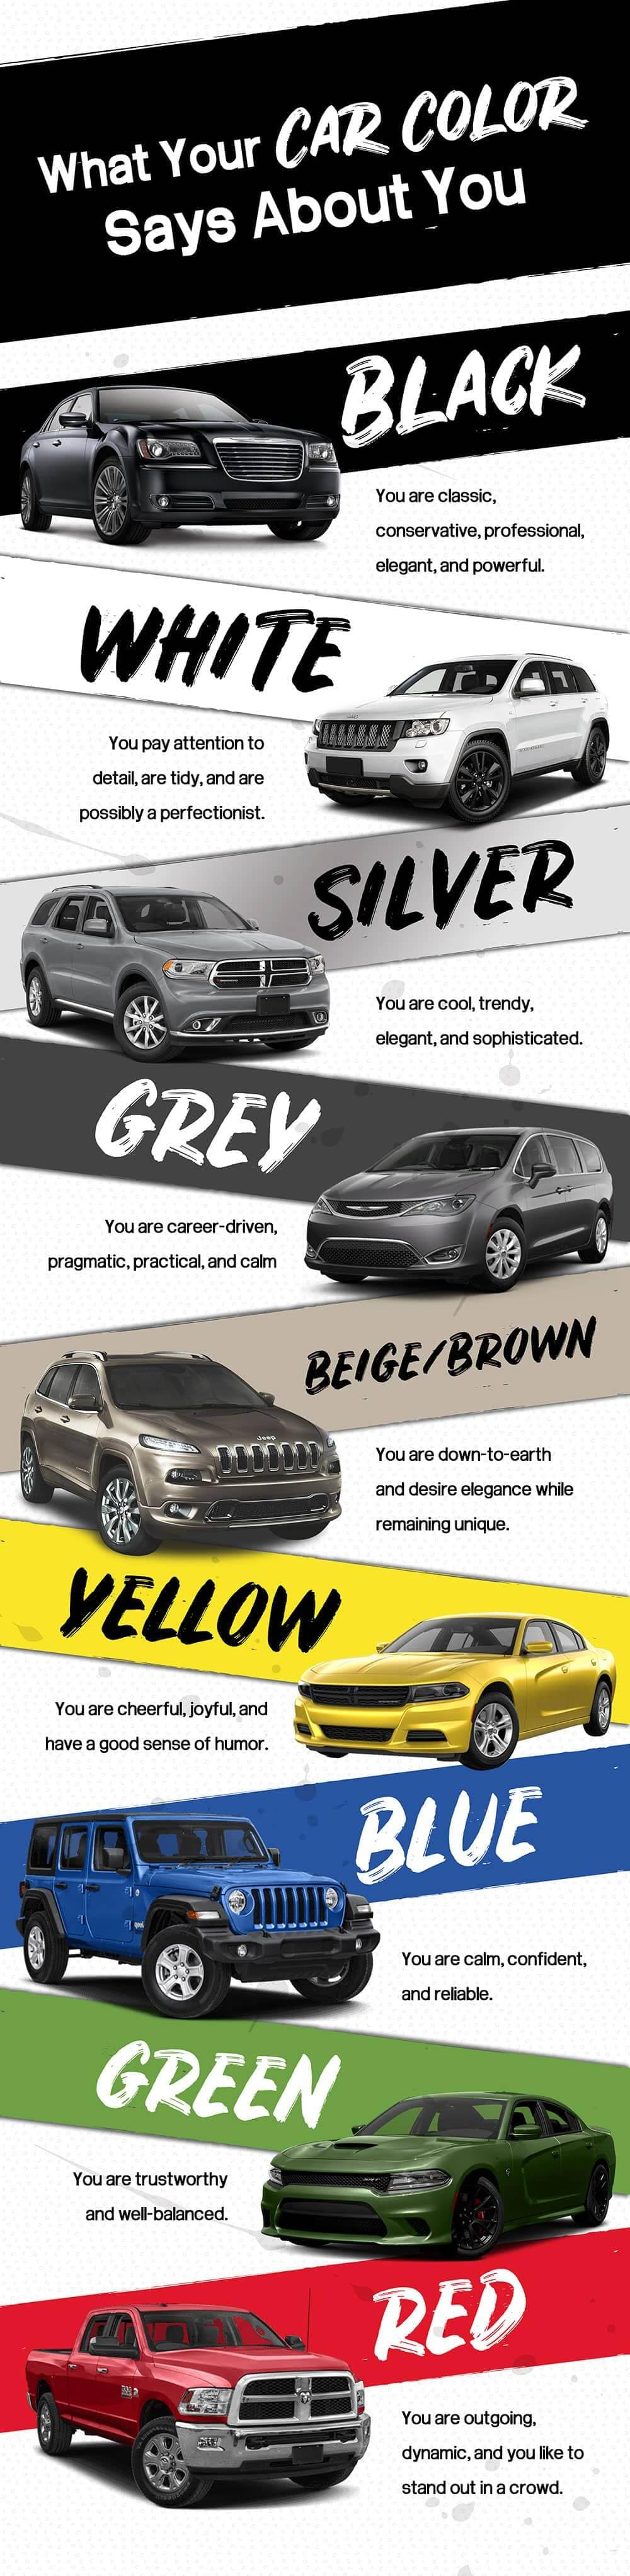 What Your Car Color Says About You: Black: You are classic, conservative, professional, elegant, and powerful. White: You pay attention to detail, are tidy, and are possibly a perfectionist.  Silver: You are cool, trendy, elegant, and sophisticated.  Gray: You are career-driven, pragmatic, practical, and calm.  Brown/Beige: You are down-to-earth and desire elegance while remaining unique.  Yellow: You are cheerful, joyful, and have a good sense of humor.  Blue: You are calm, confident, and reliable.  Green: You are trustworthy and well-balanced.  Red: You are outgoing, dynamic, and you like to stand out in a crowd.